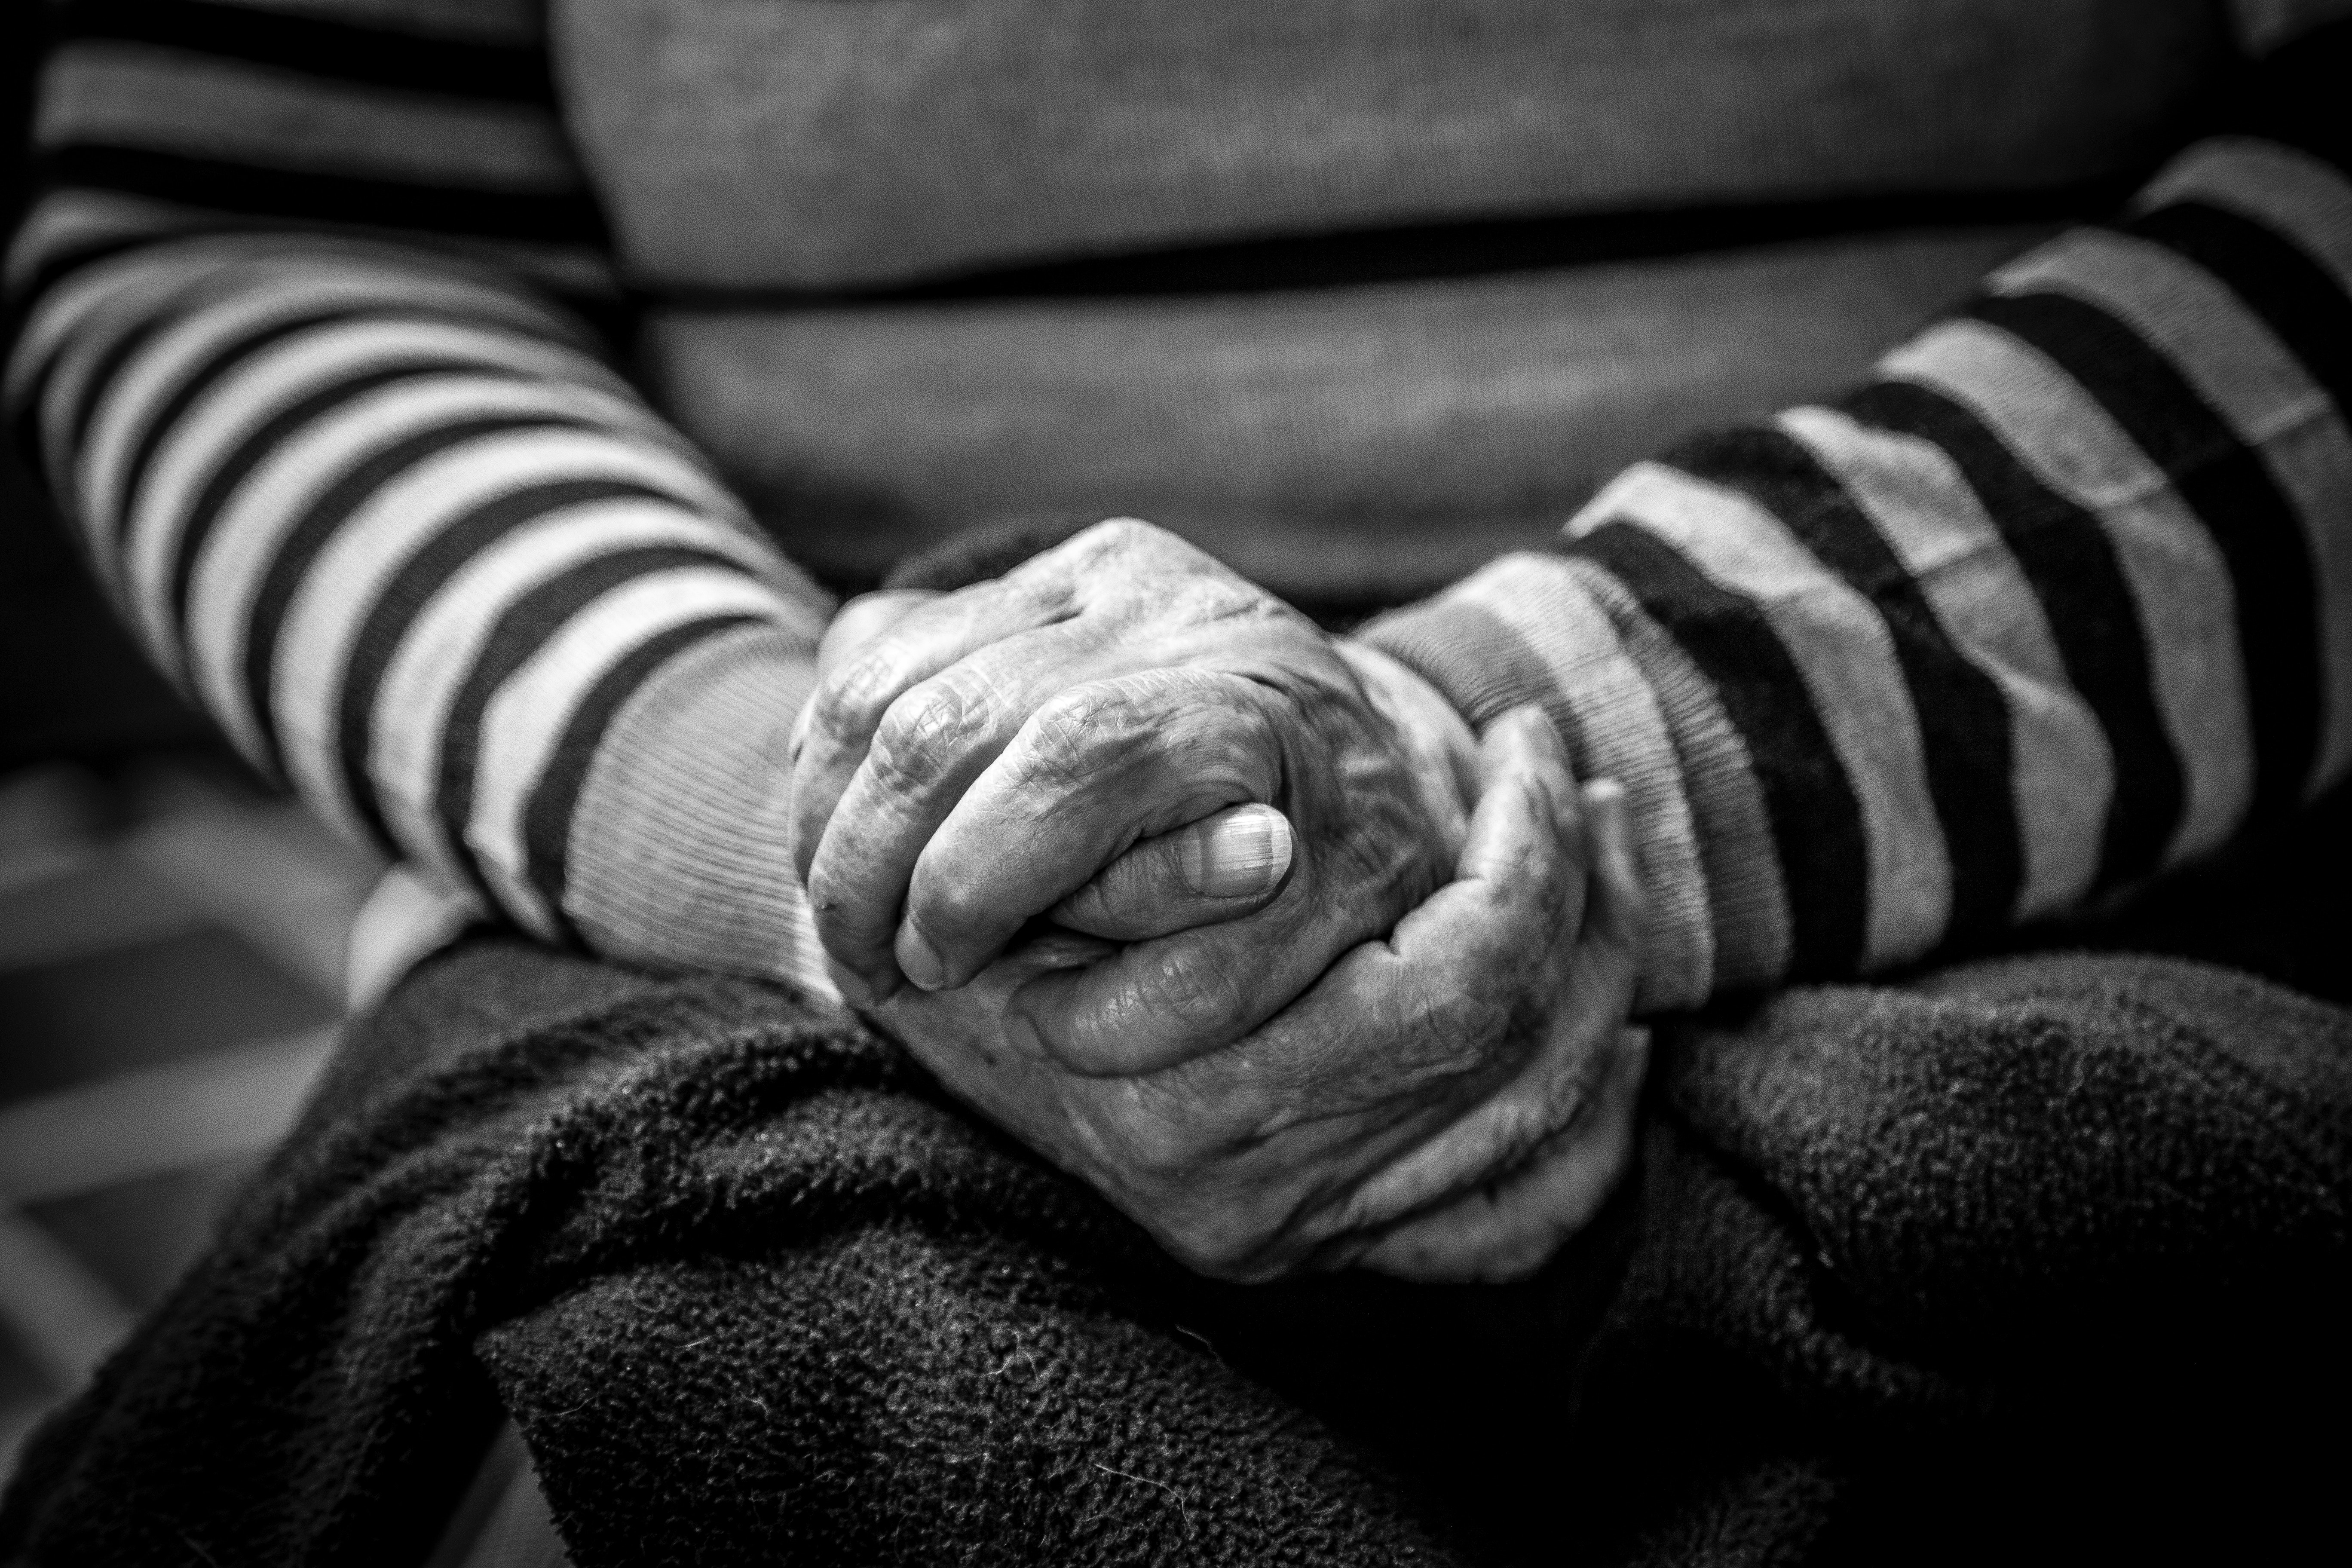 'We have the same rights' – a project by ENNHRI on the human rights of older persons in long-term care